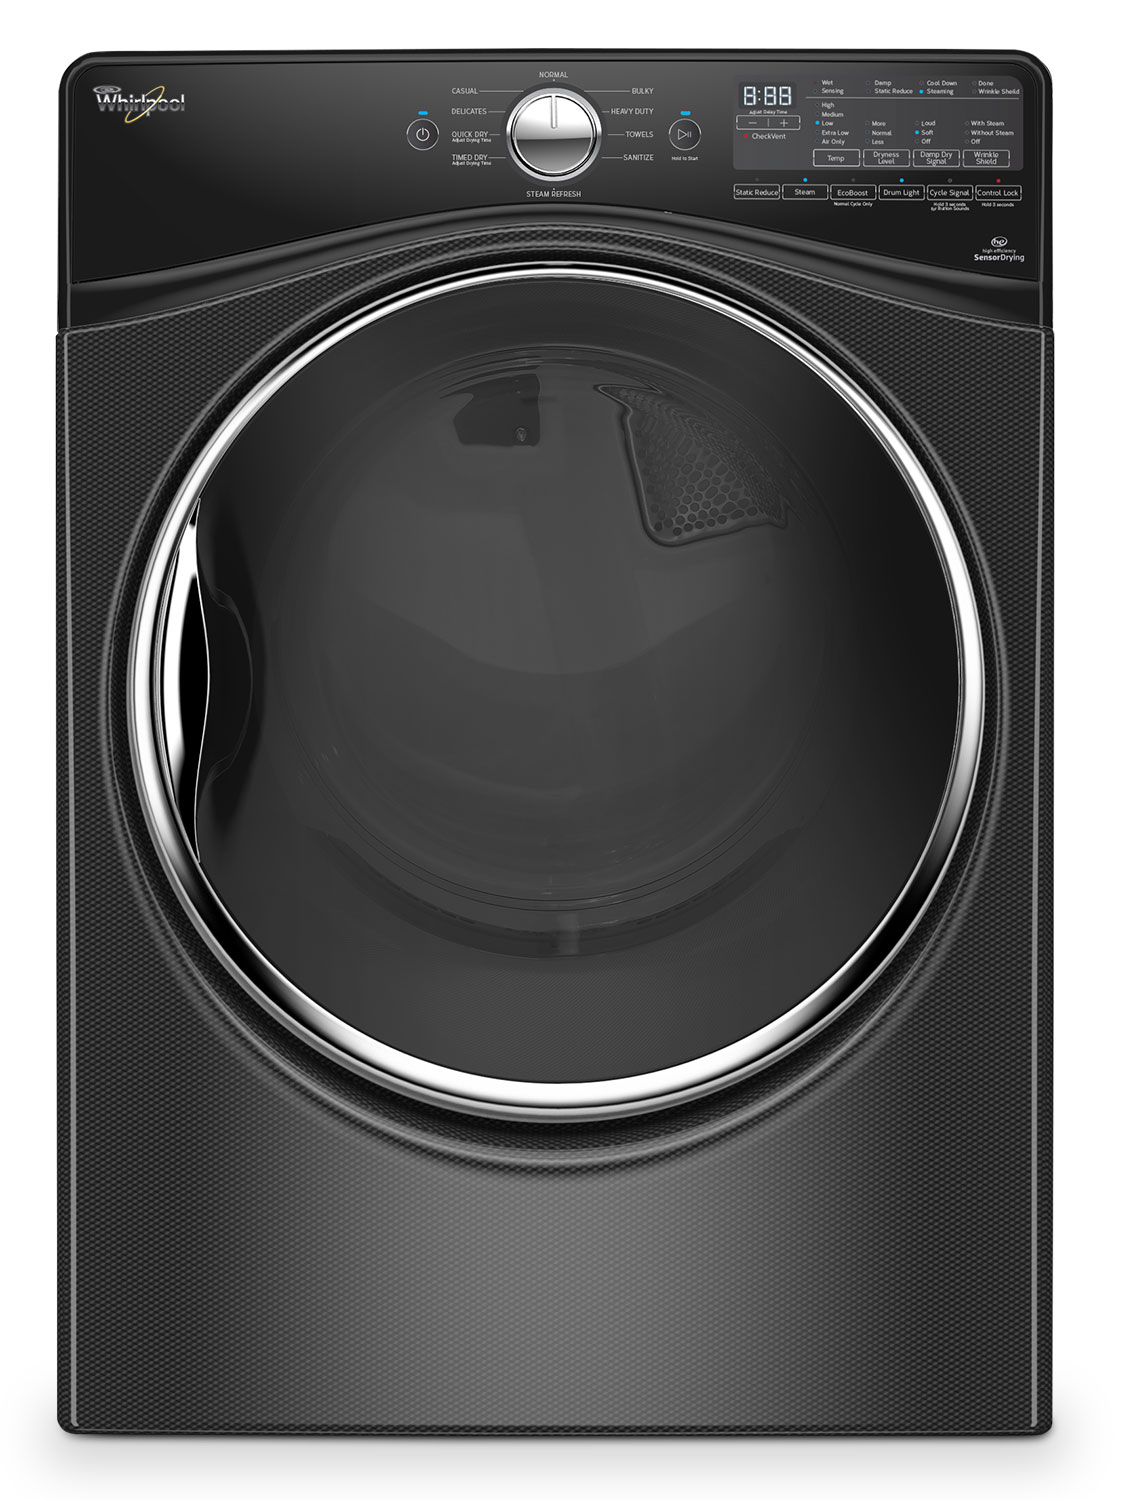 Washers and Dryers - Whirlpool 7.4 Cu. Ft. Gas Dryer – WGD92HEFD